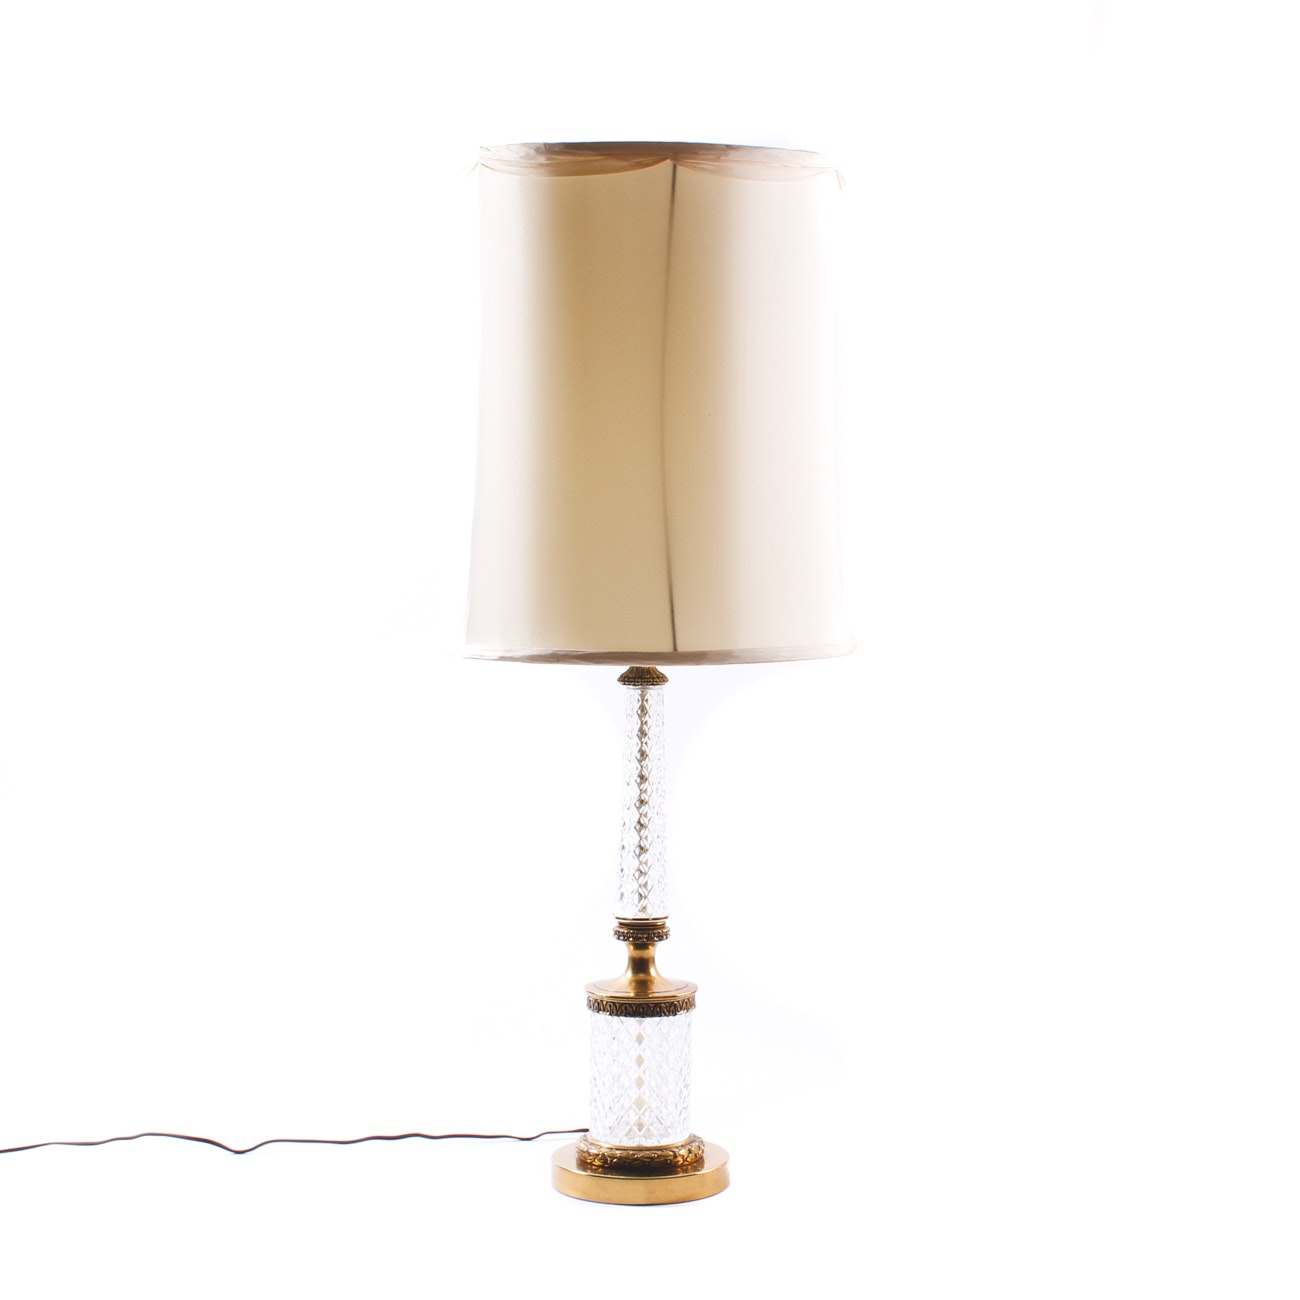 Tall Vintage Glass and Brass Table Lamp